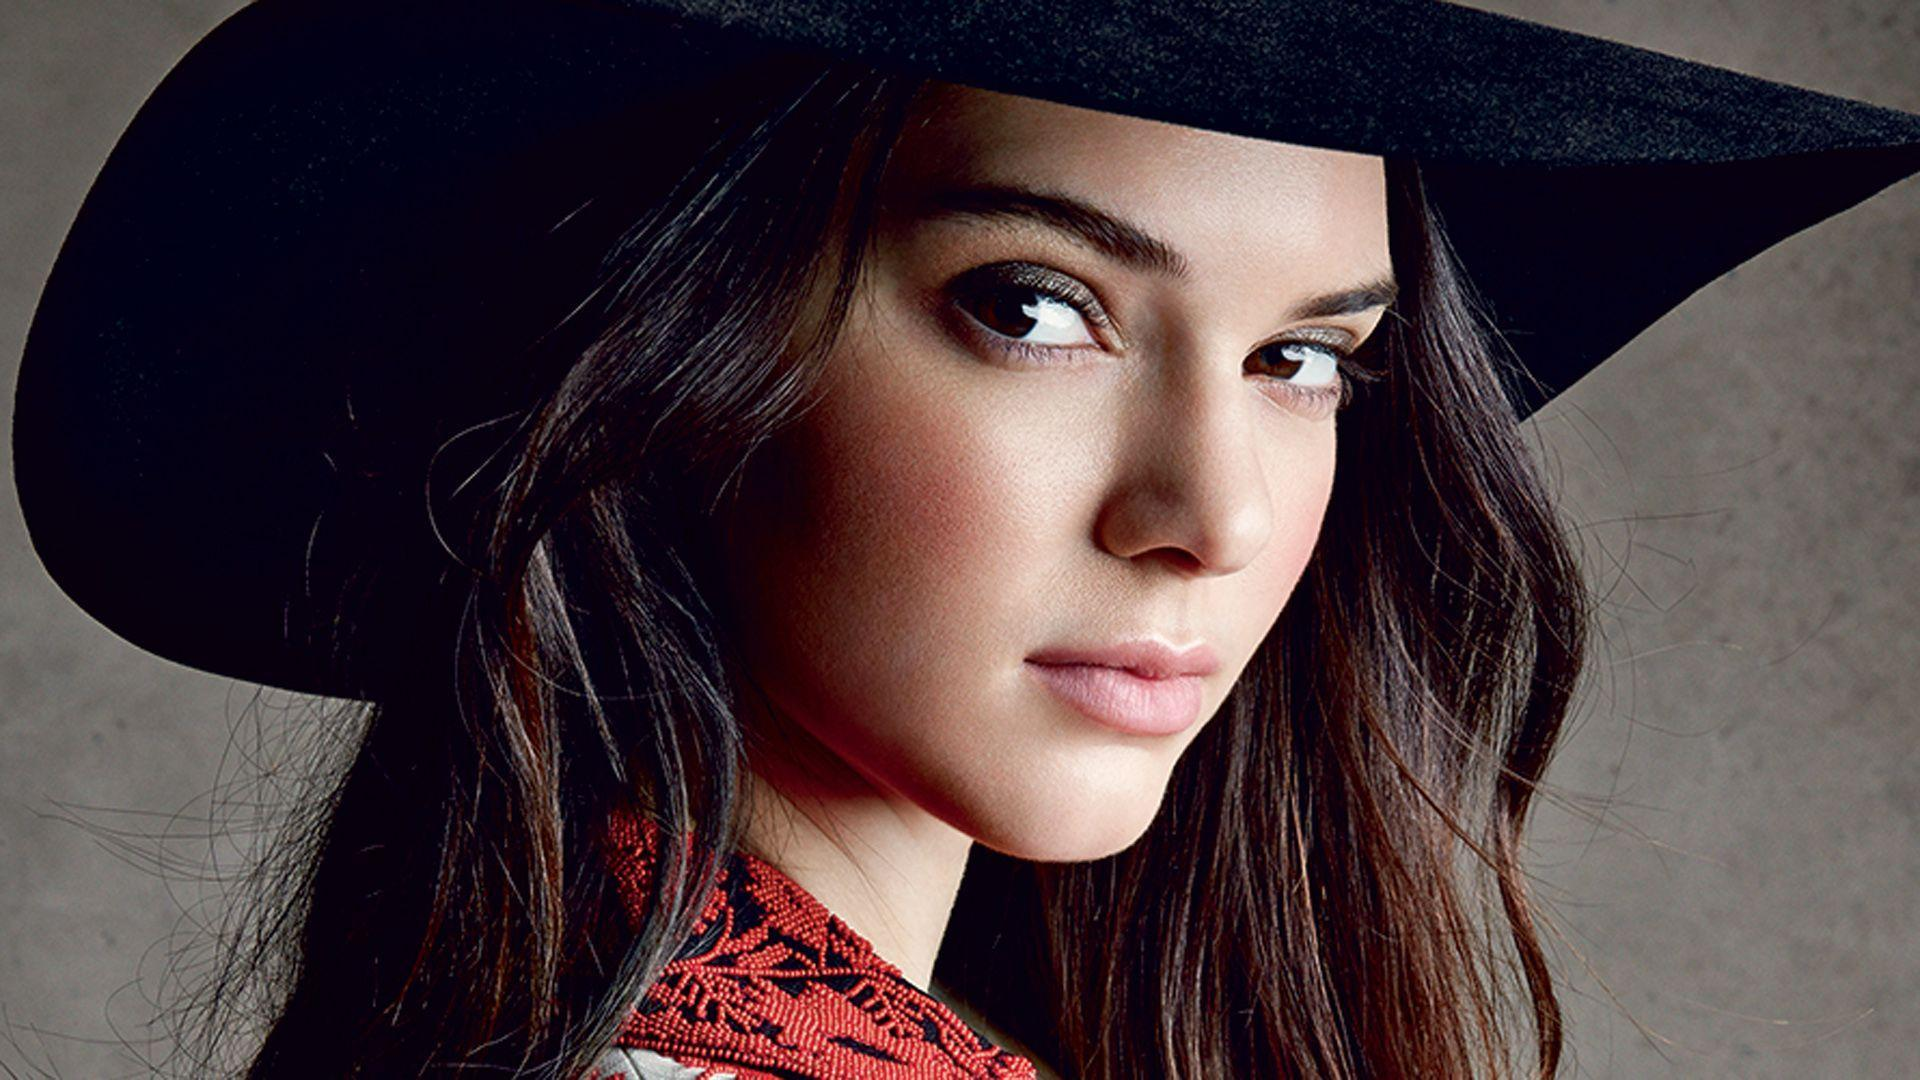 Kendall Jenner Wallpapers Download High Quality HD Images 1920x1080